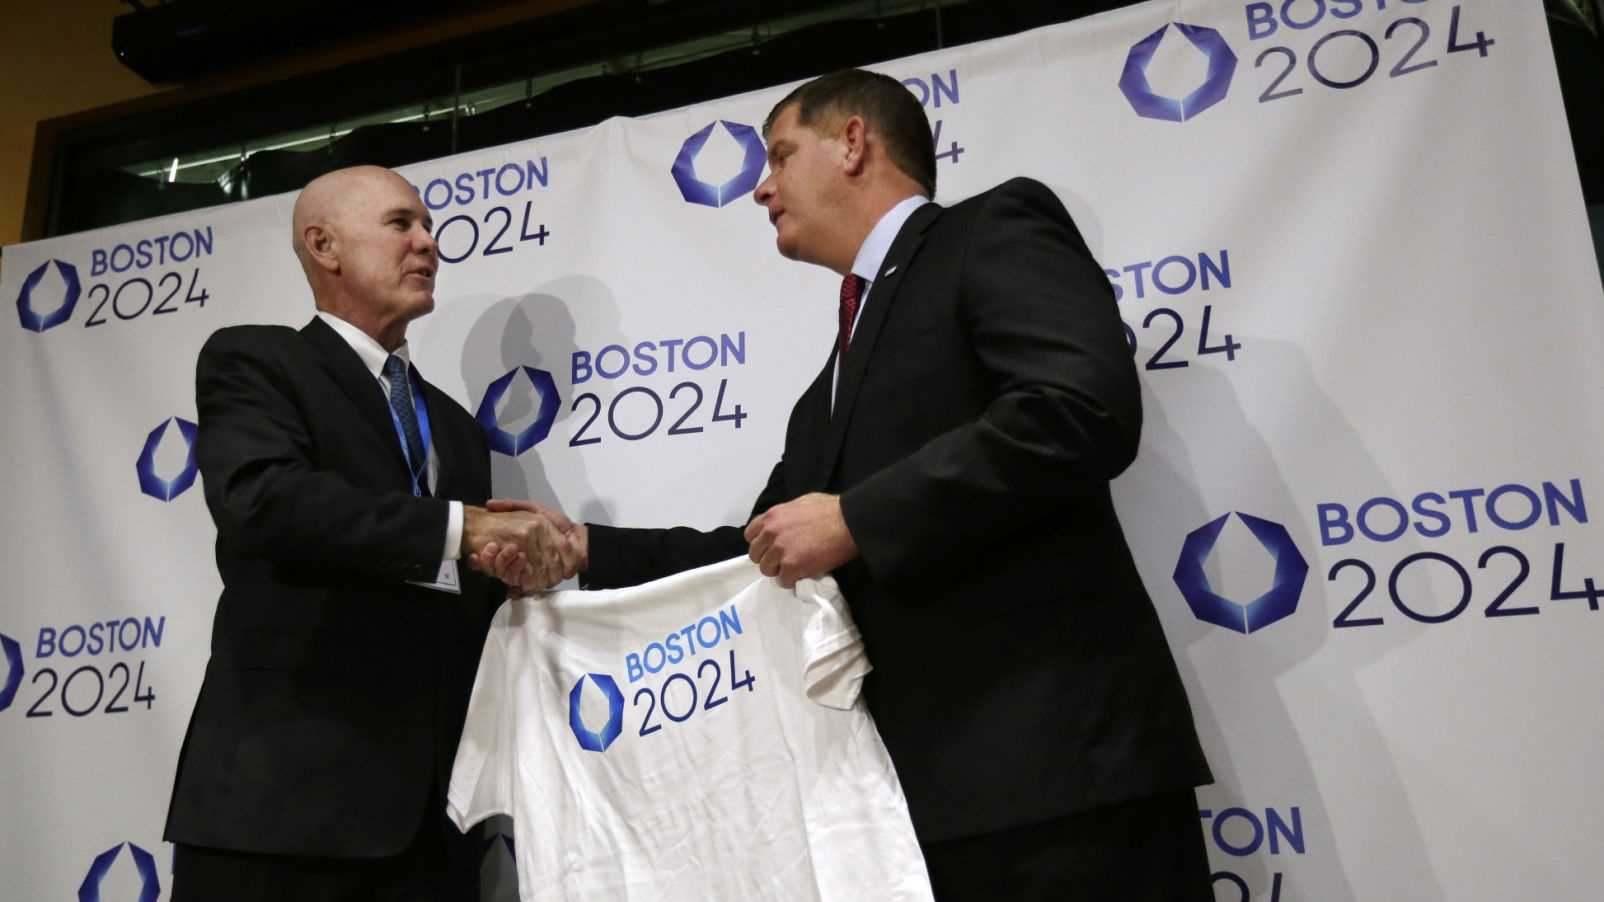 Boston Mayor Marty Walsh, right, is presented with a tee shirt by Ralph Cox, an organizer pursuing an Olympics bid, during an event held to generate public interest in a 2024 Olympics bid for the city of Boston, Monday, Oct. 6, 2014, in Boston. The U.S. Olympic Committee is weighing whether to put in a bid for the 2024 Summer Games.